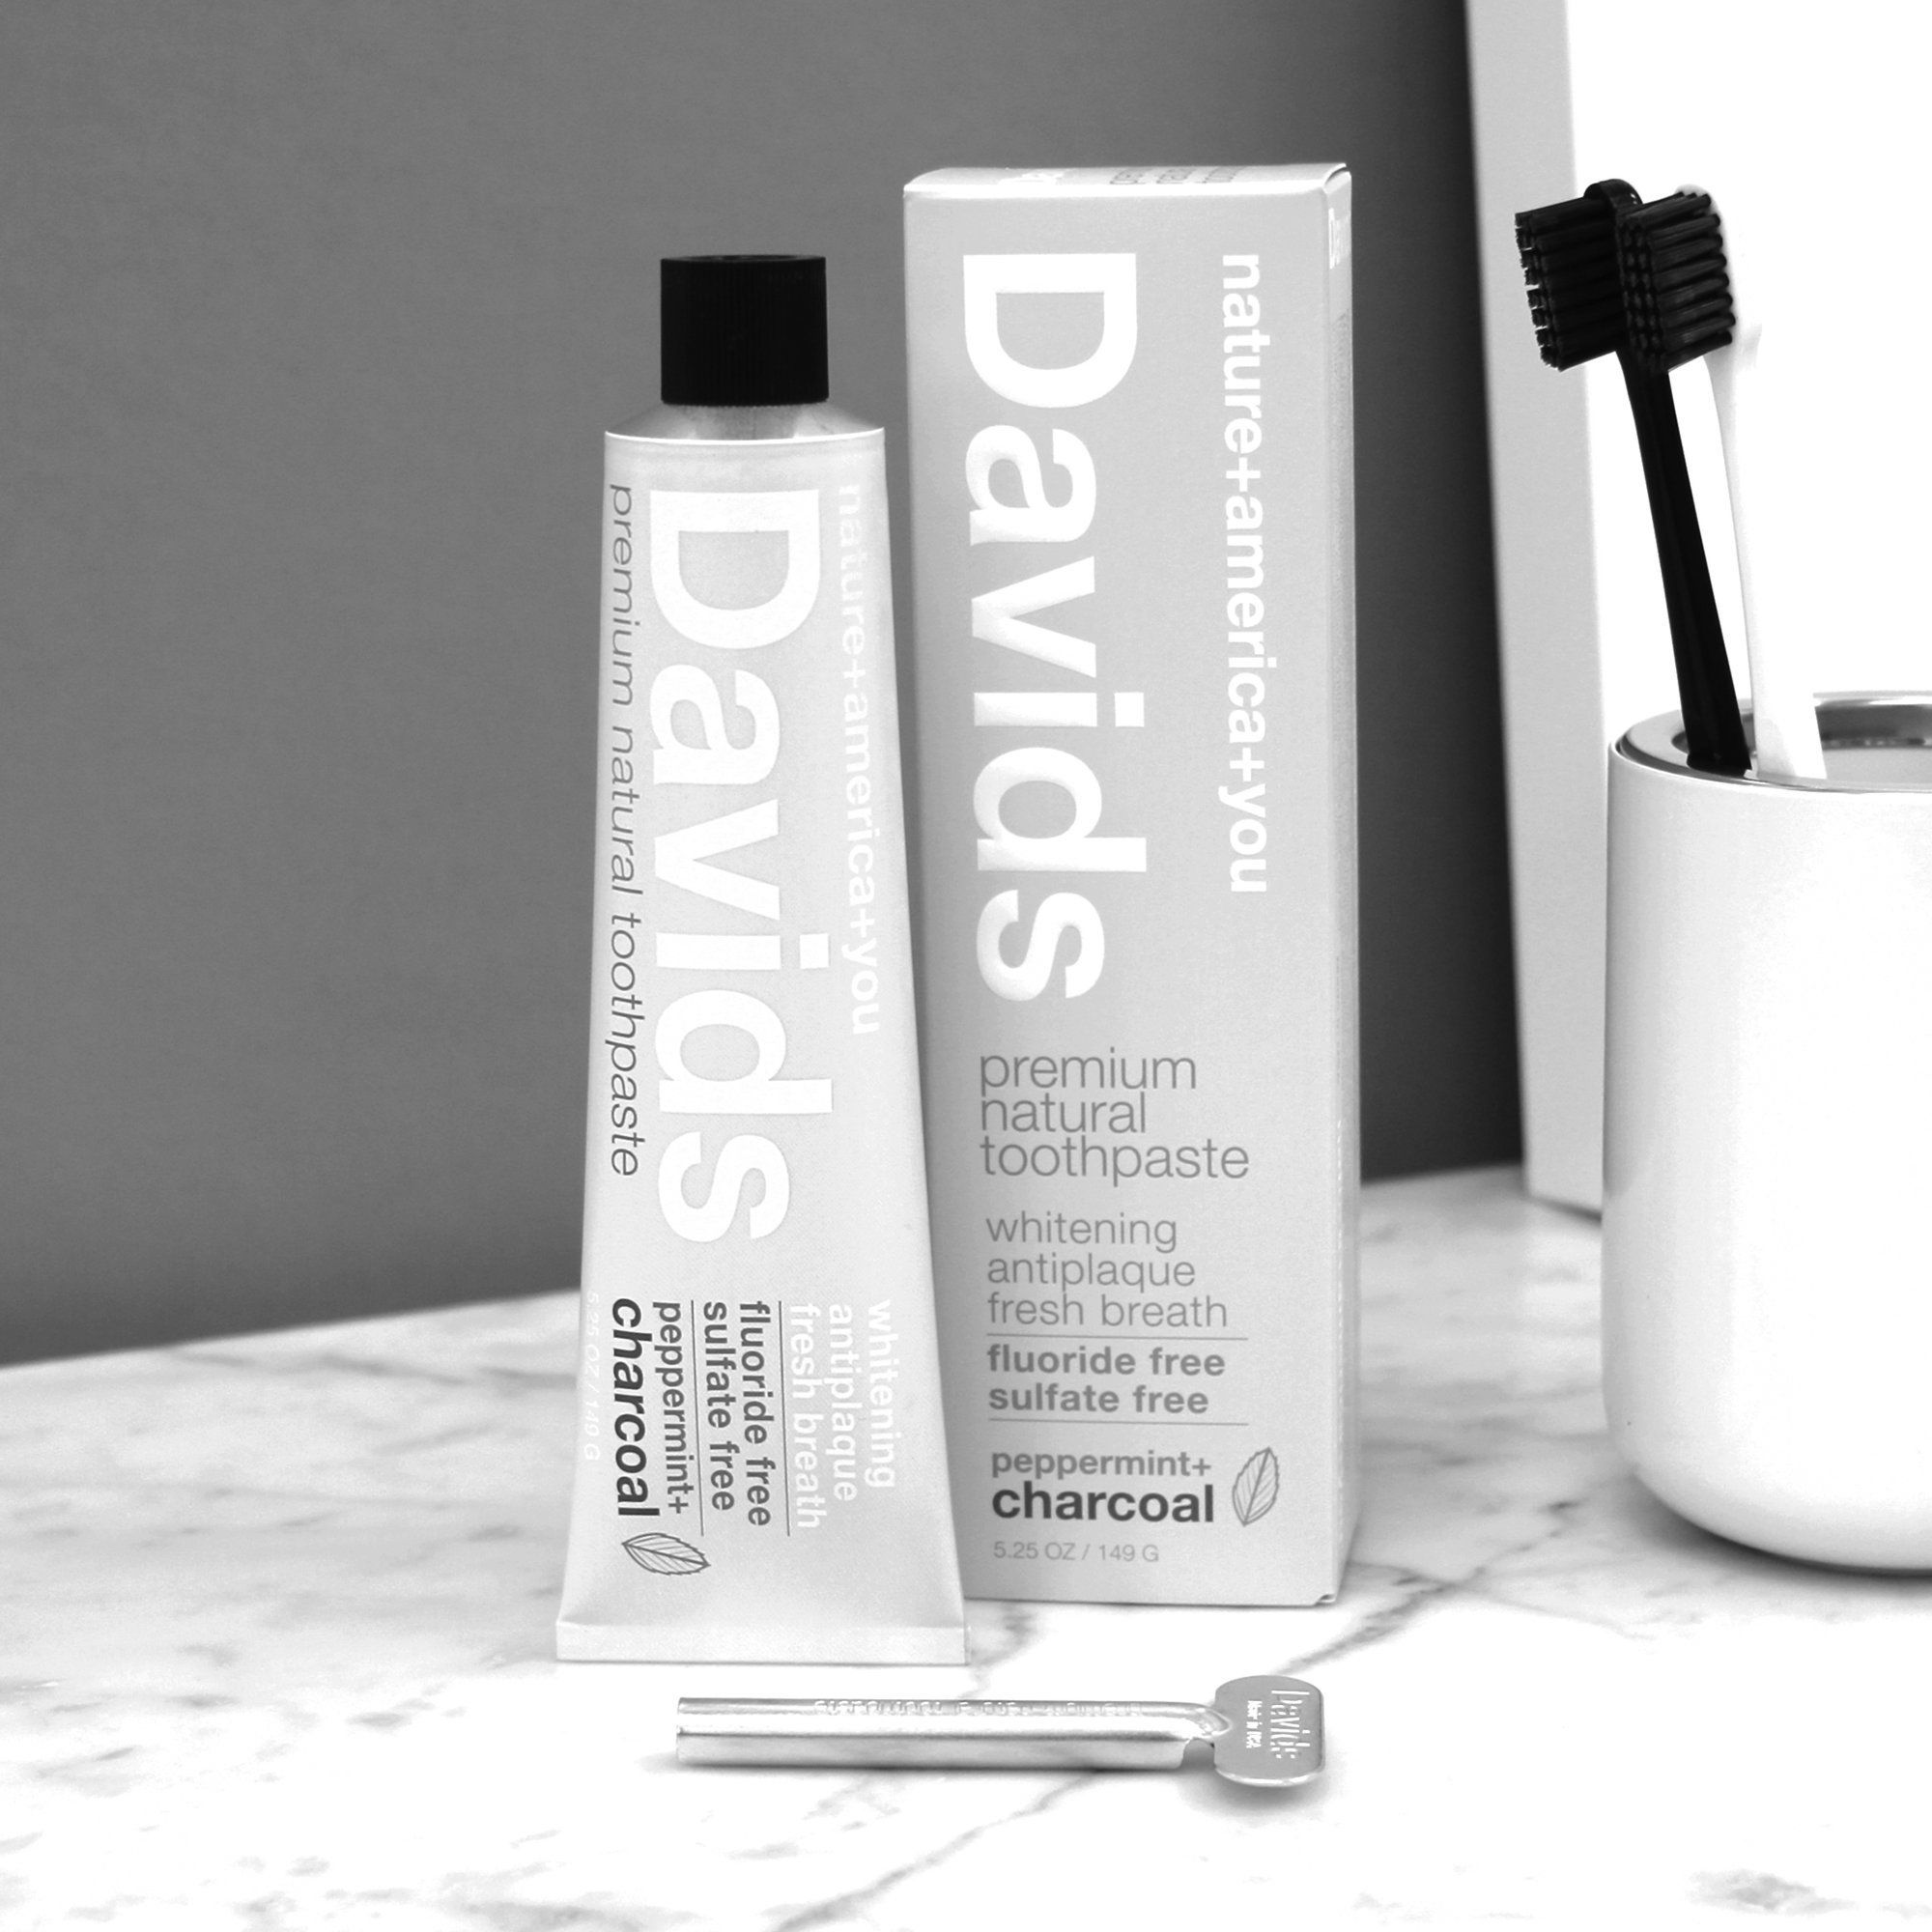 Davids Toothpaste Peppermint Charcoal Toothpaste in a